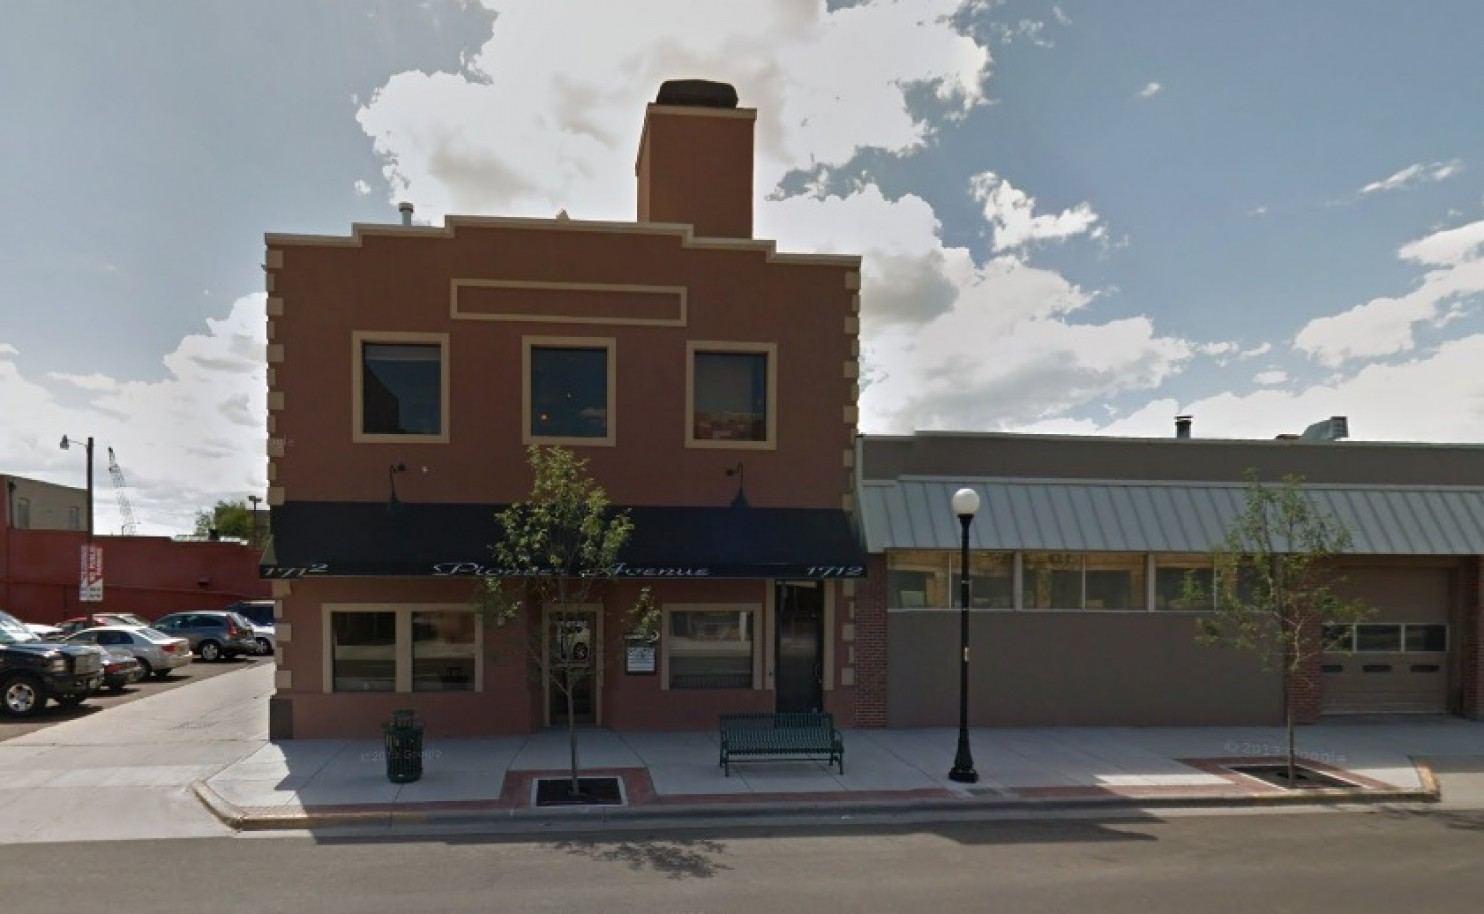 This building in Wyoming was the source of the relocation of the internet (washington post)